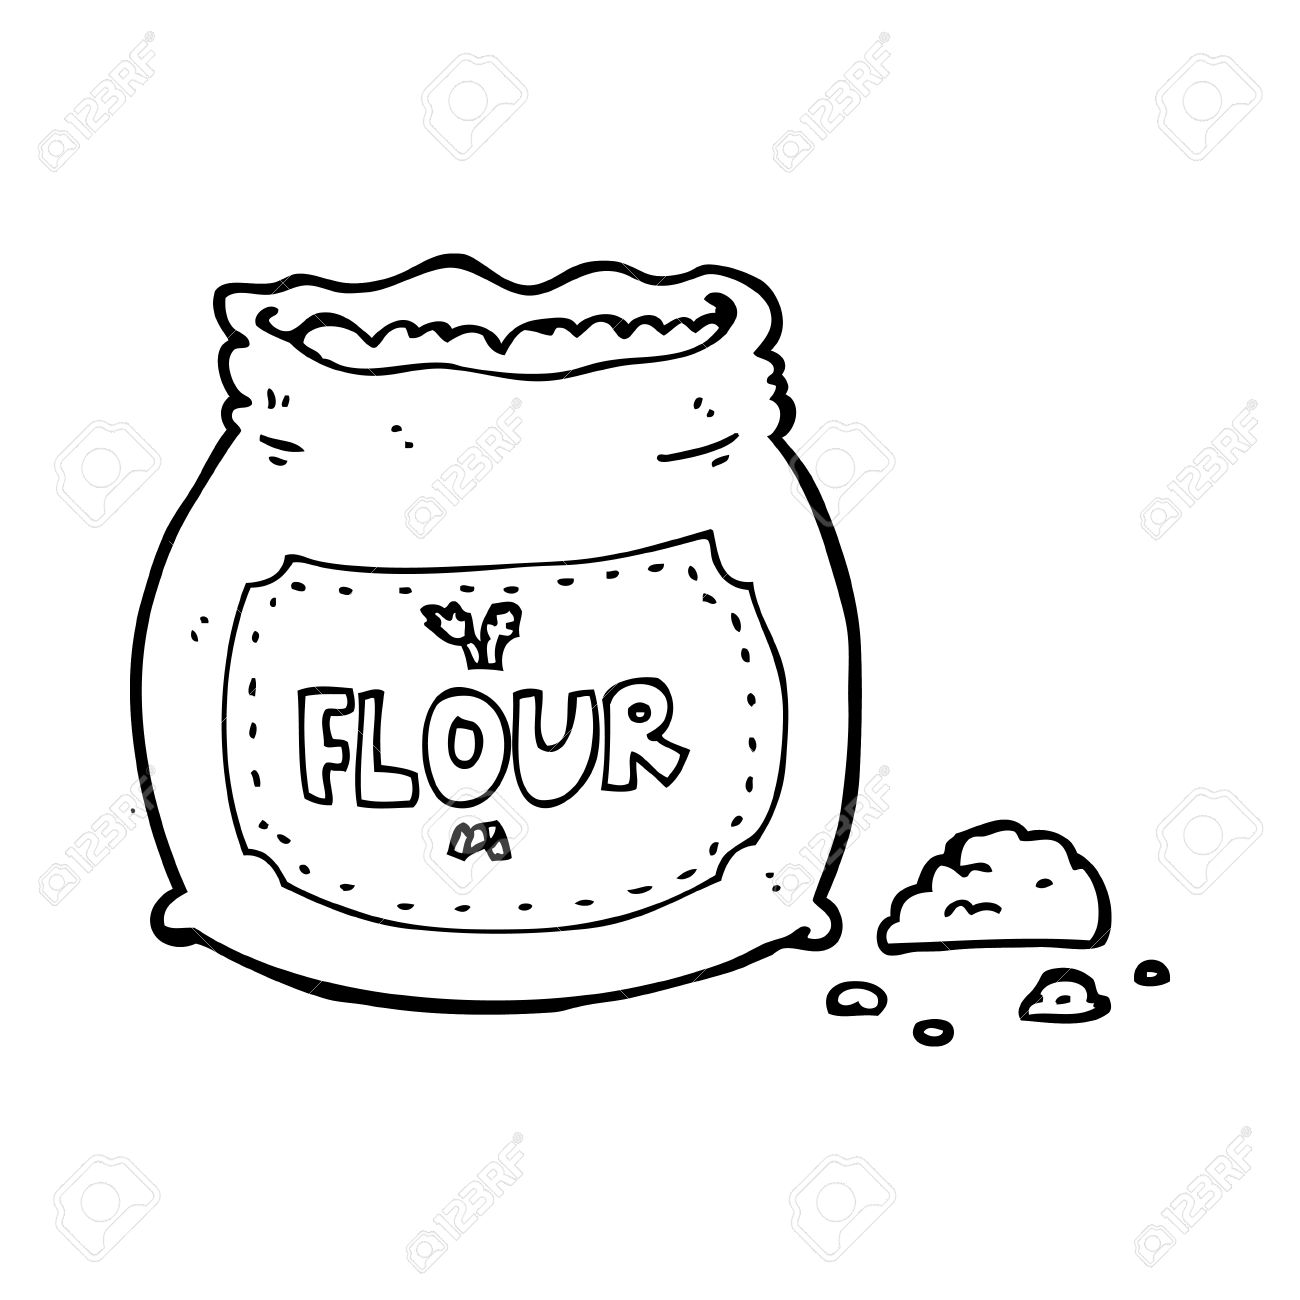 cartoon bag of flour royalty free cliparts vectors and stock illustration image 25010351 cartoon bag of flour